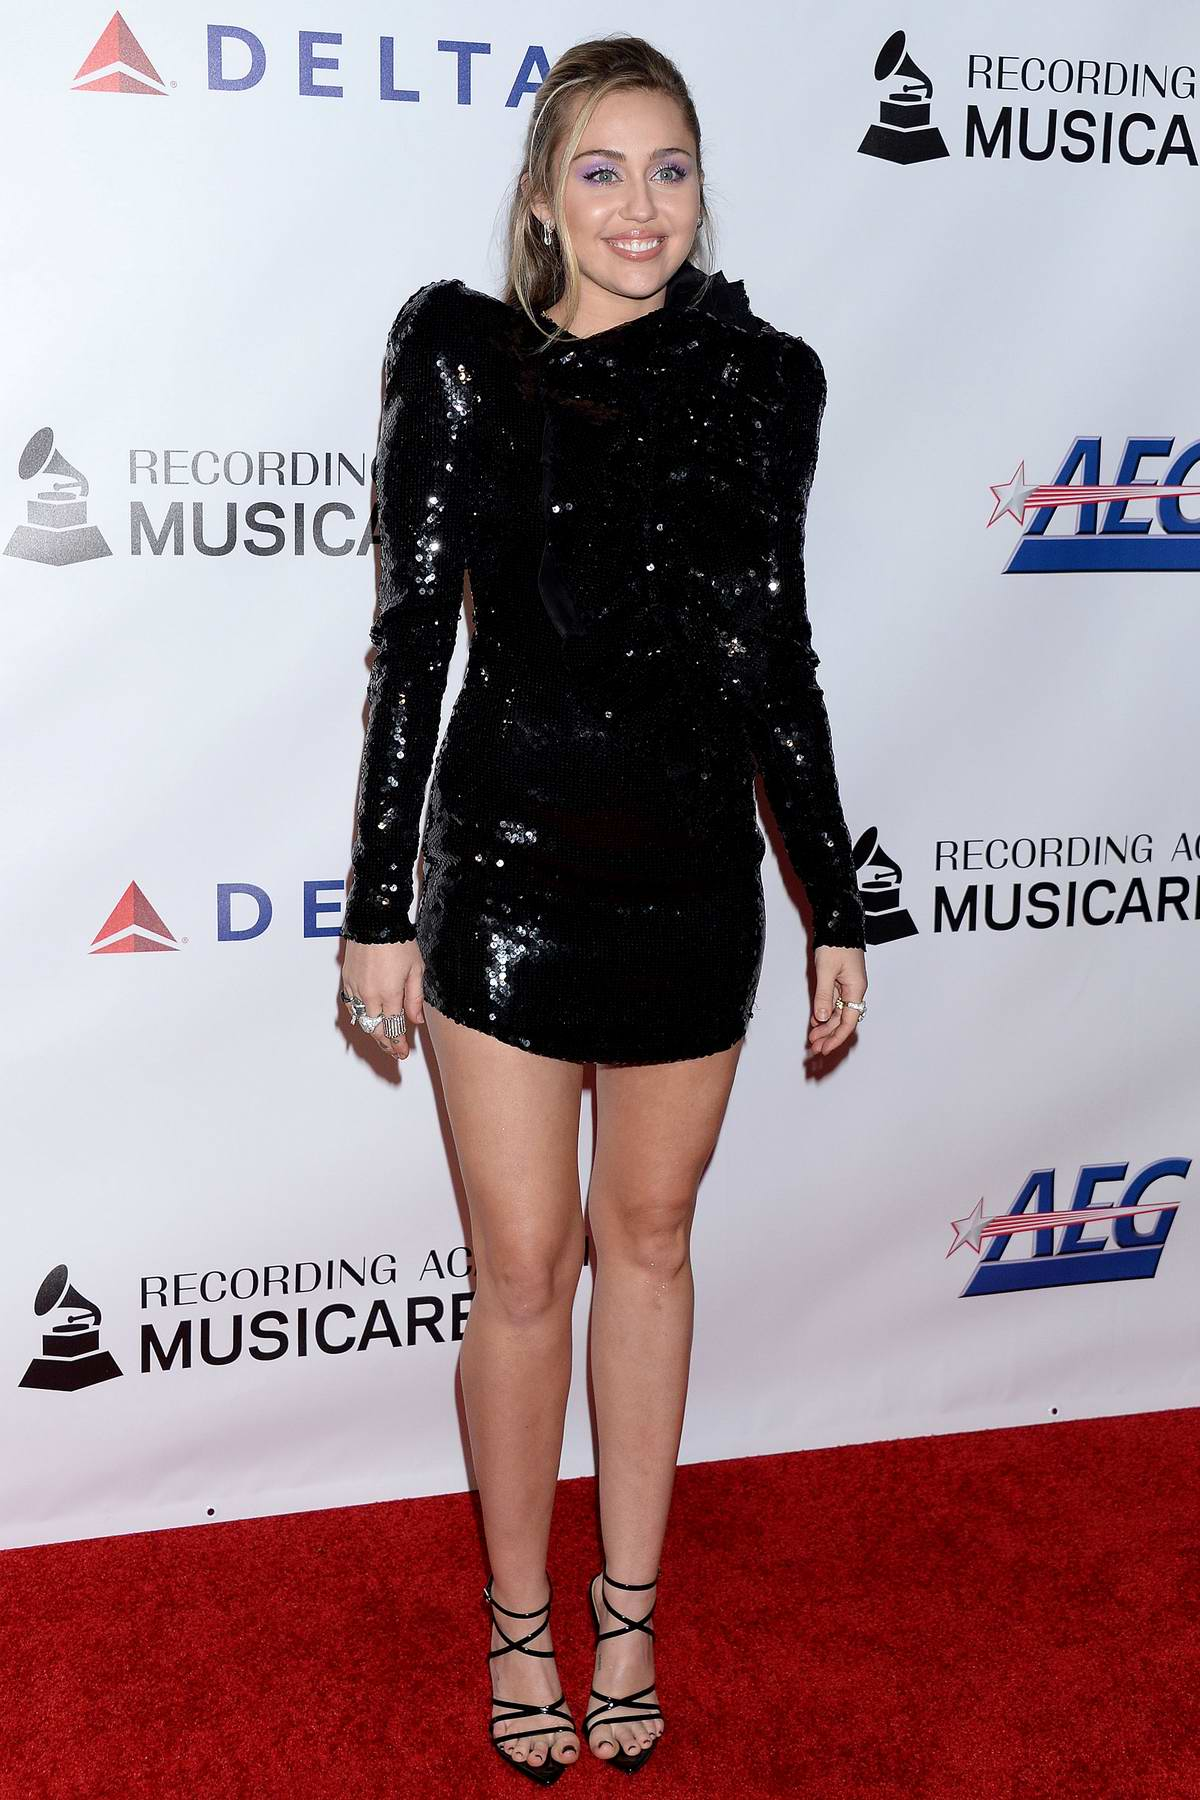 Miley Cyrus attends the MusiCares 2019 Person of the Year honoring Dolly Parton event at the Los Angeles Convention Center in Los Angeles